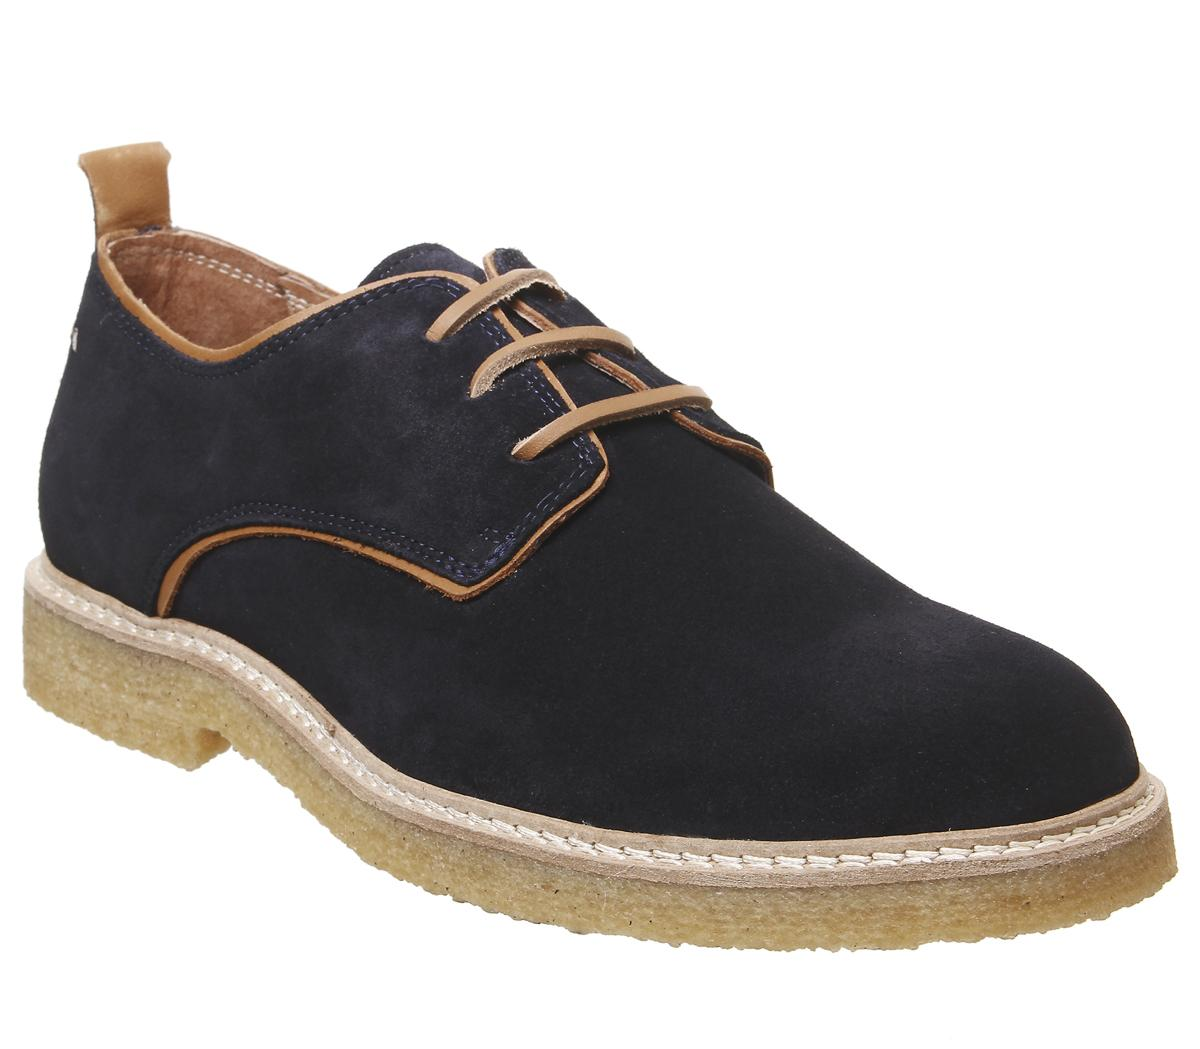 Poste Derby Shoes